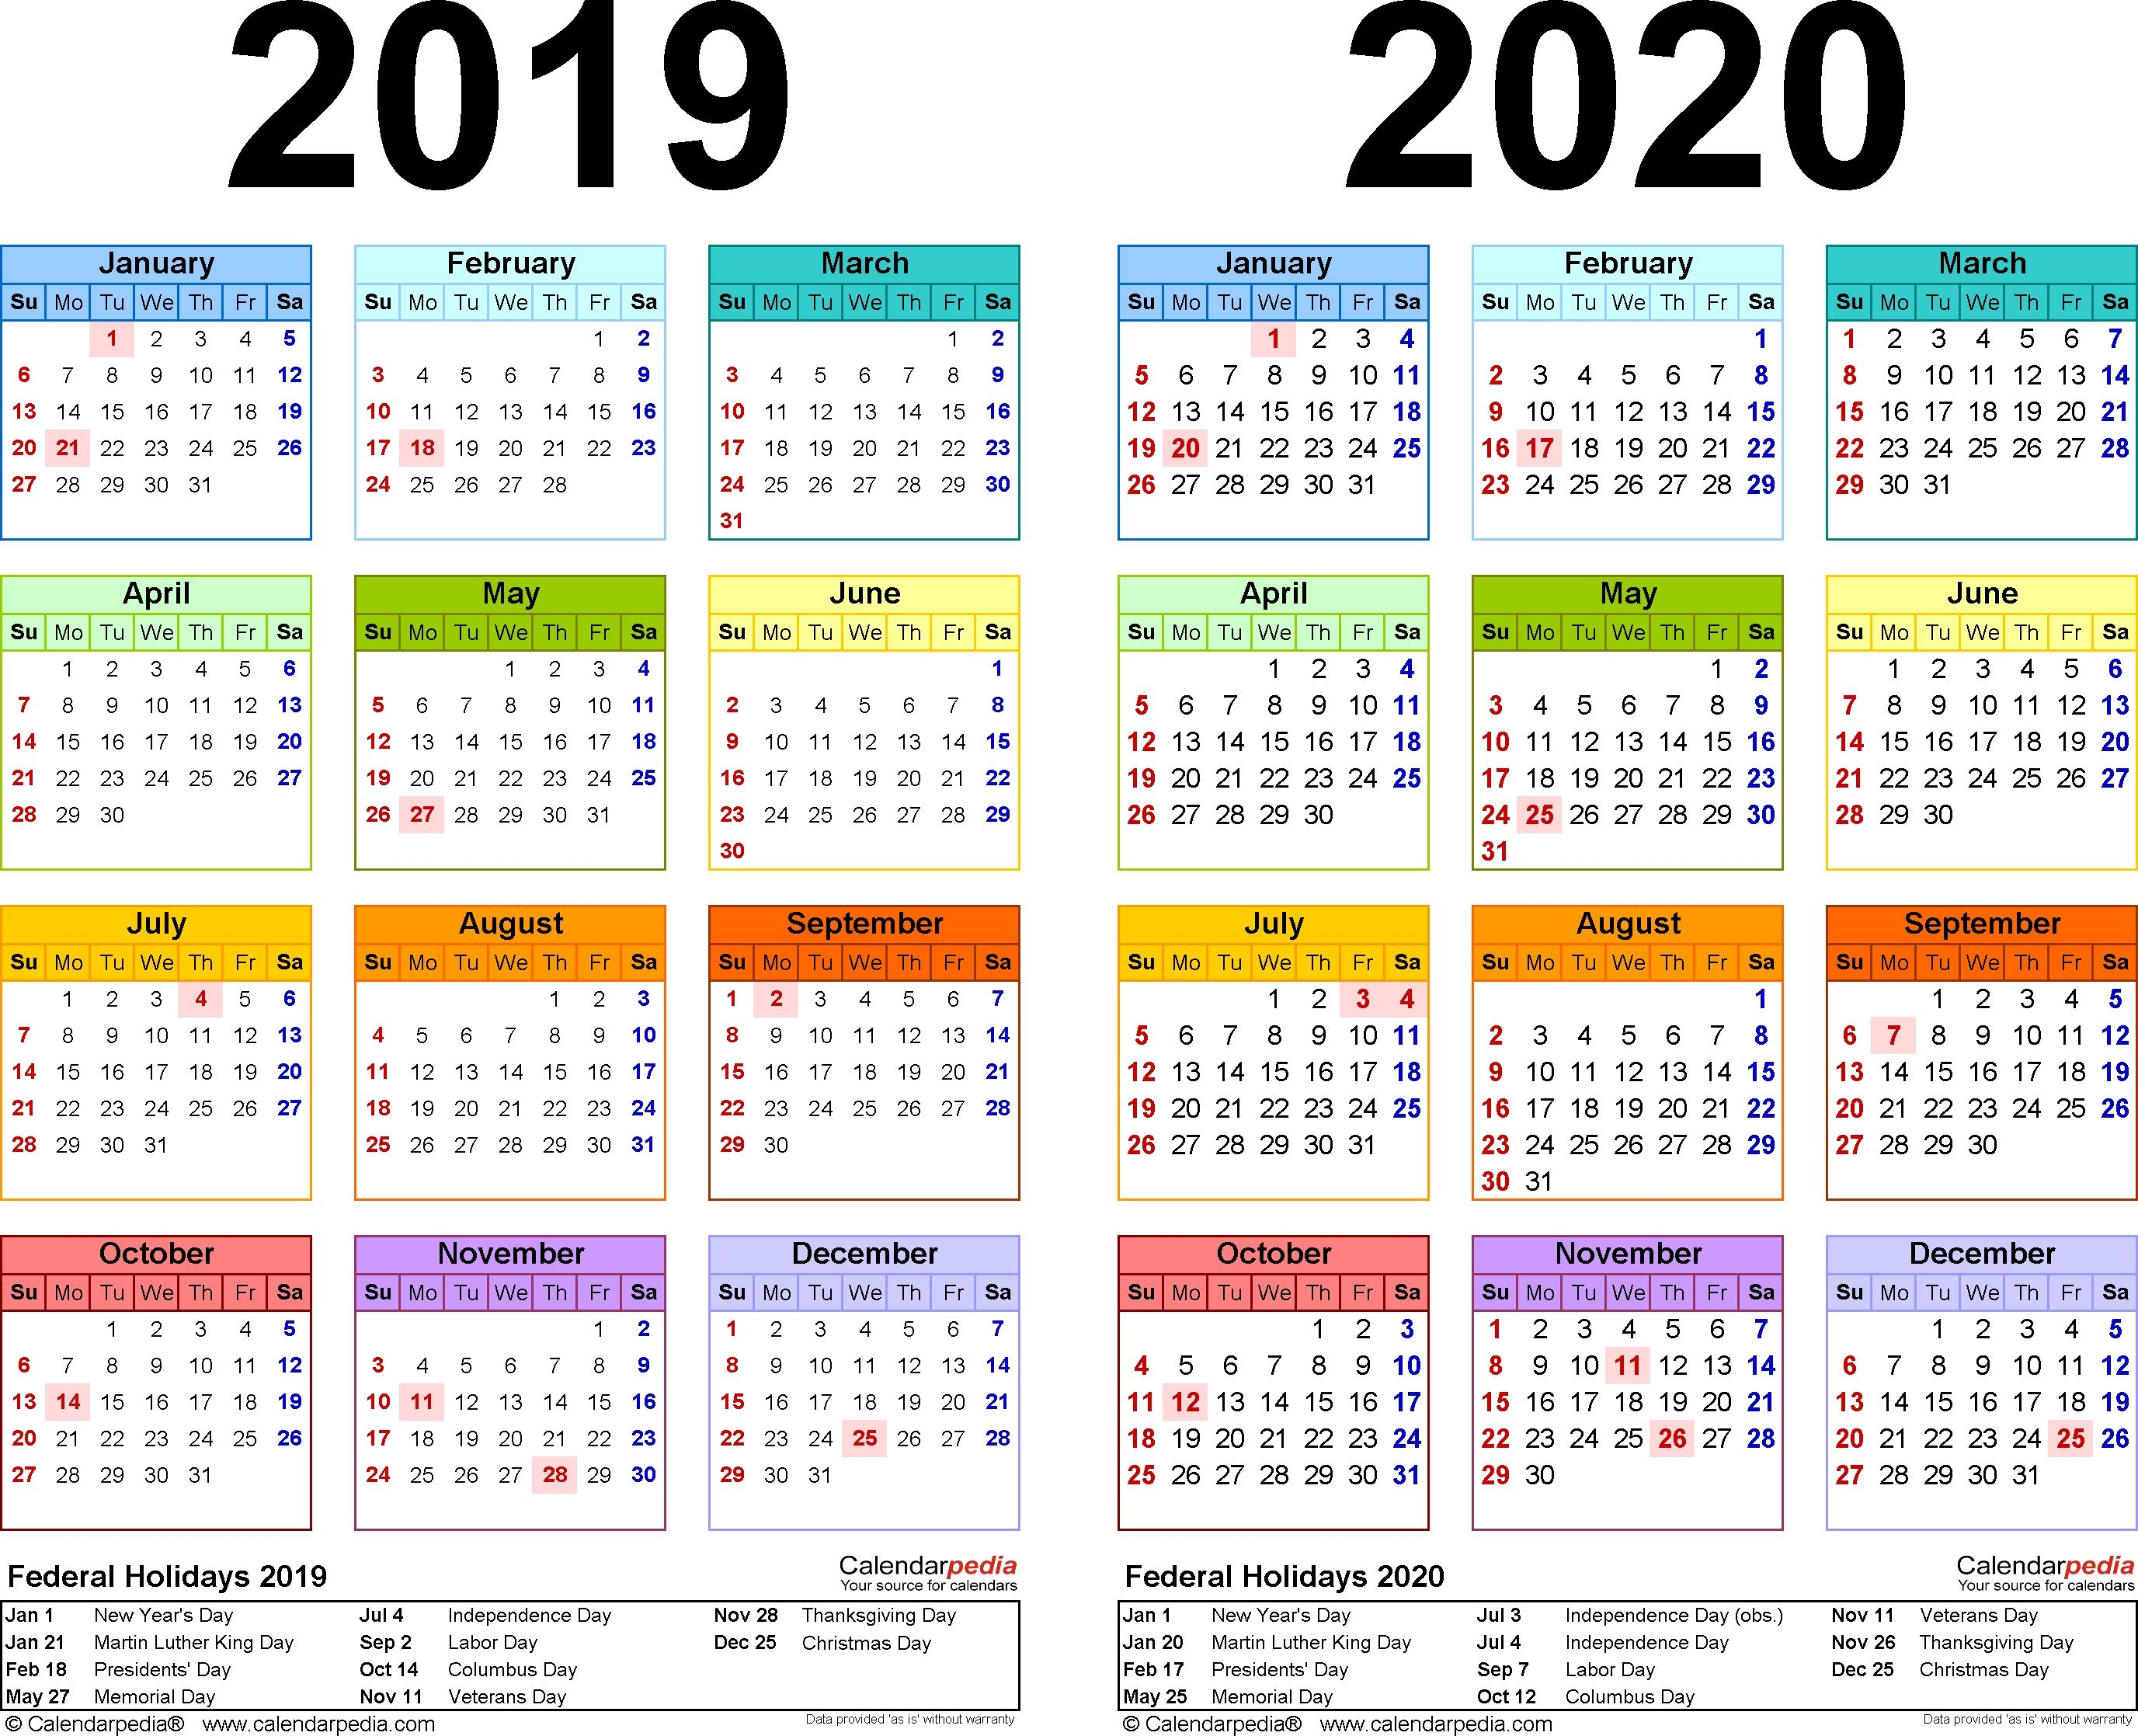 Modello Calendario 2020.2019 2020 Calendar Free Printable Two Year Excel Calendars